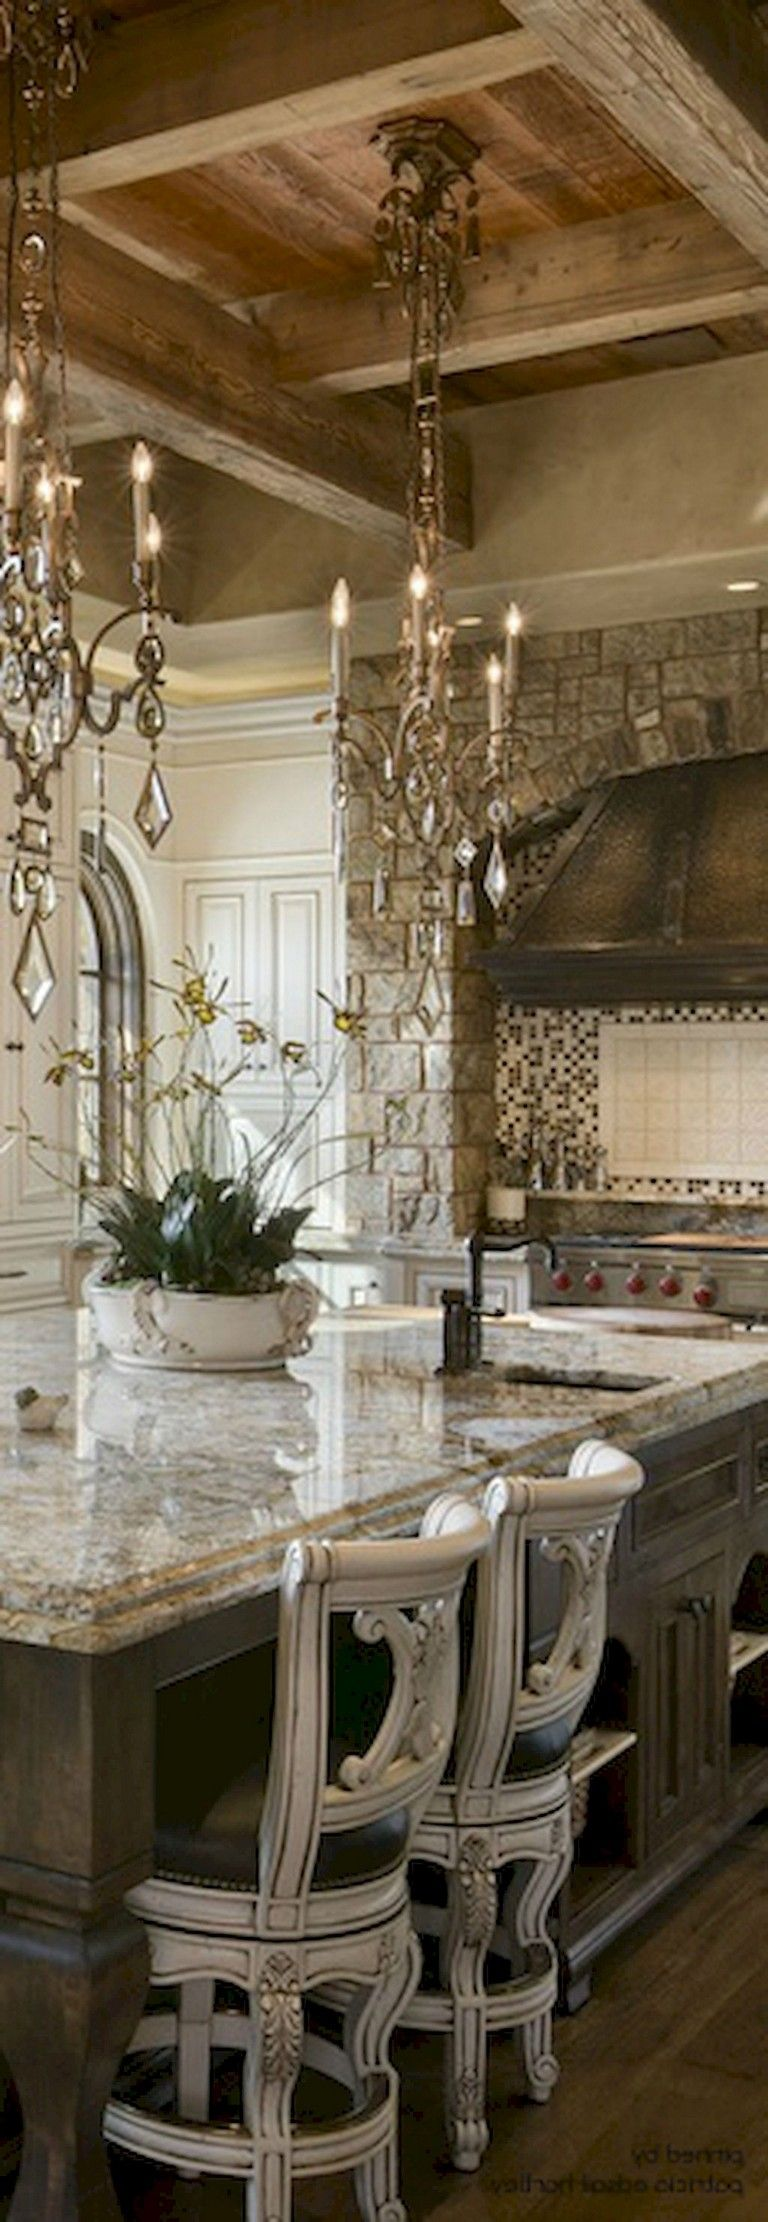 56+ Wonderful French Country Kitchen Design and Decor Ideas #countrykitchens